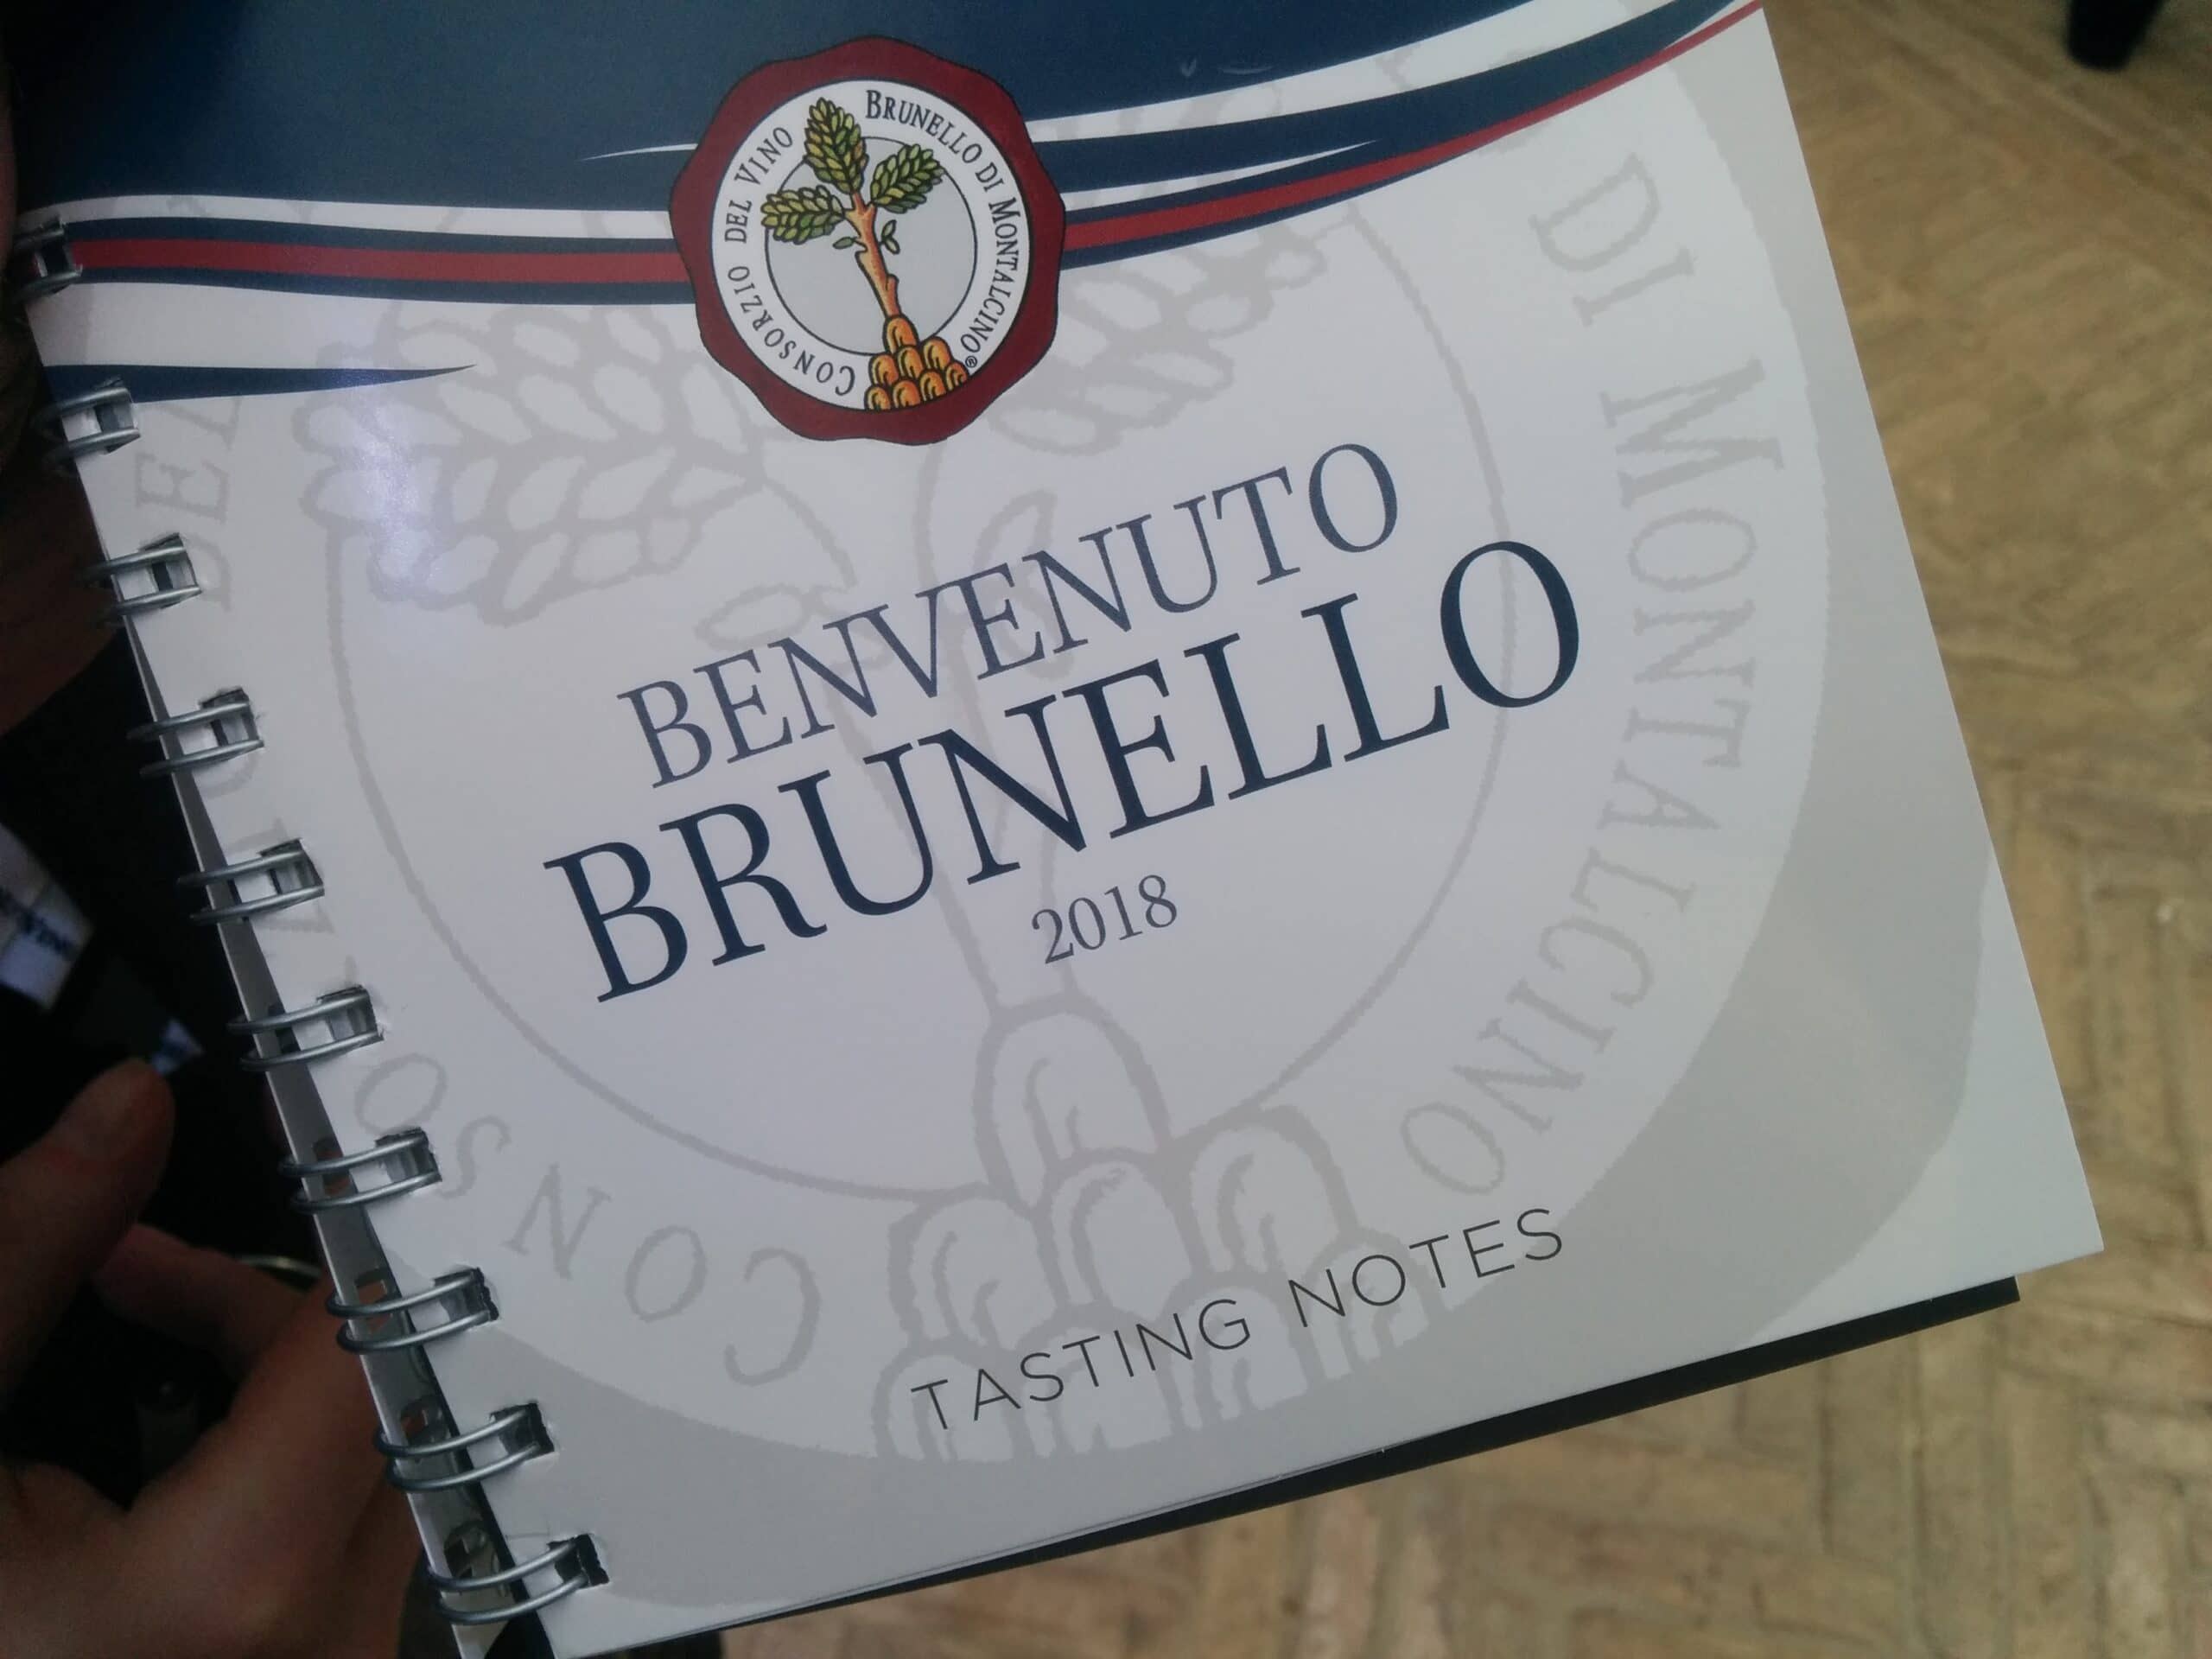 Photo of 26° Benvenuto Brunello – Anche Sting a Montalcino per celebrare l'annata 2017